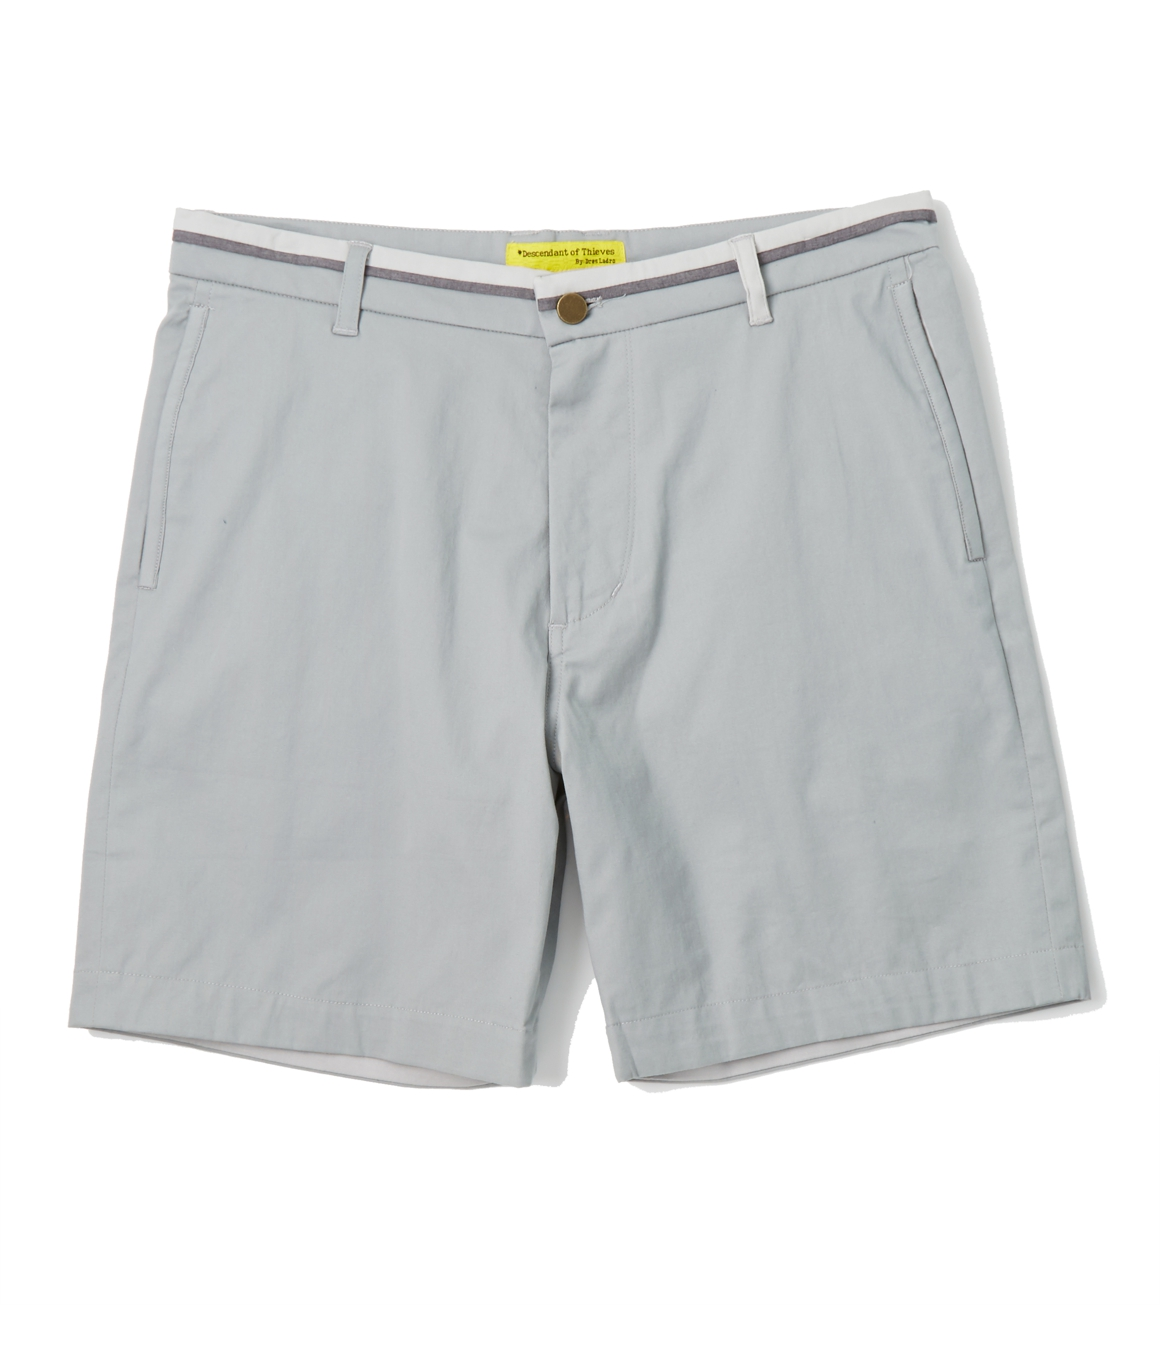 Descendant of Thieves, Strike-Off Contrast Band Short, Frost Grey, Number 1